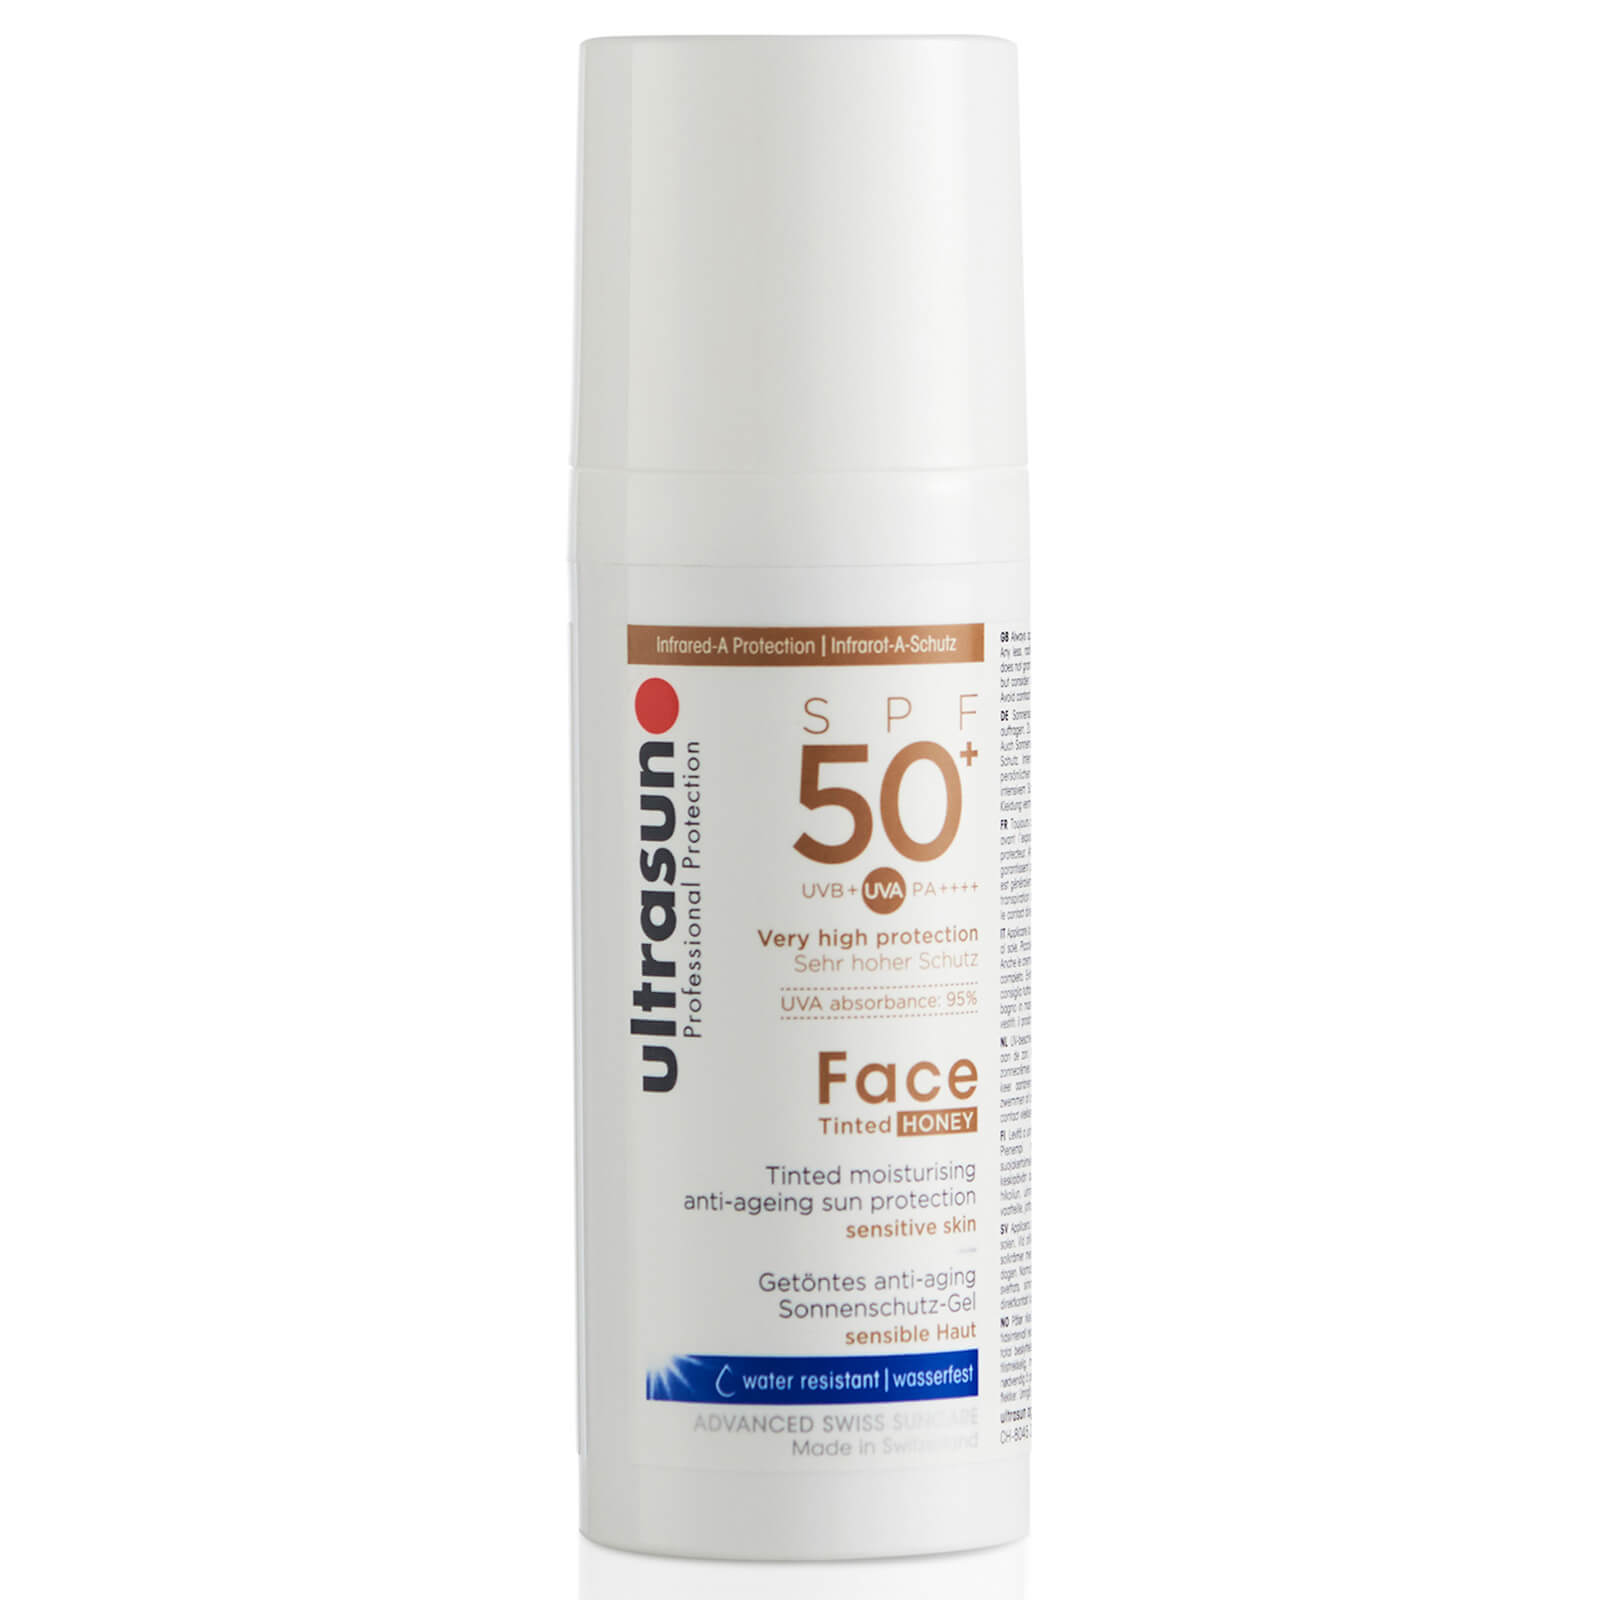 Crema facial 50+ con color de Ultrasun